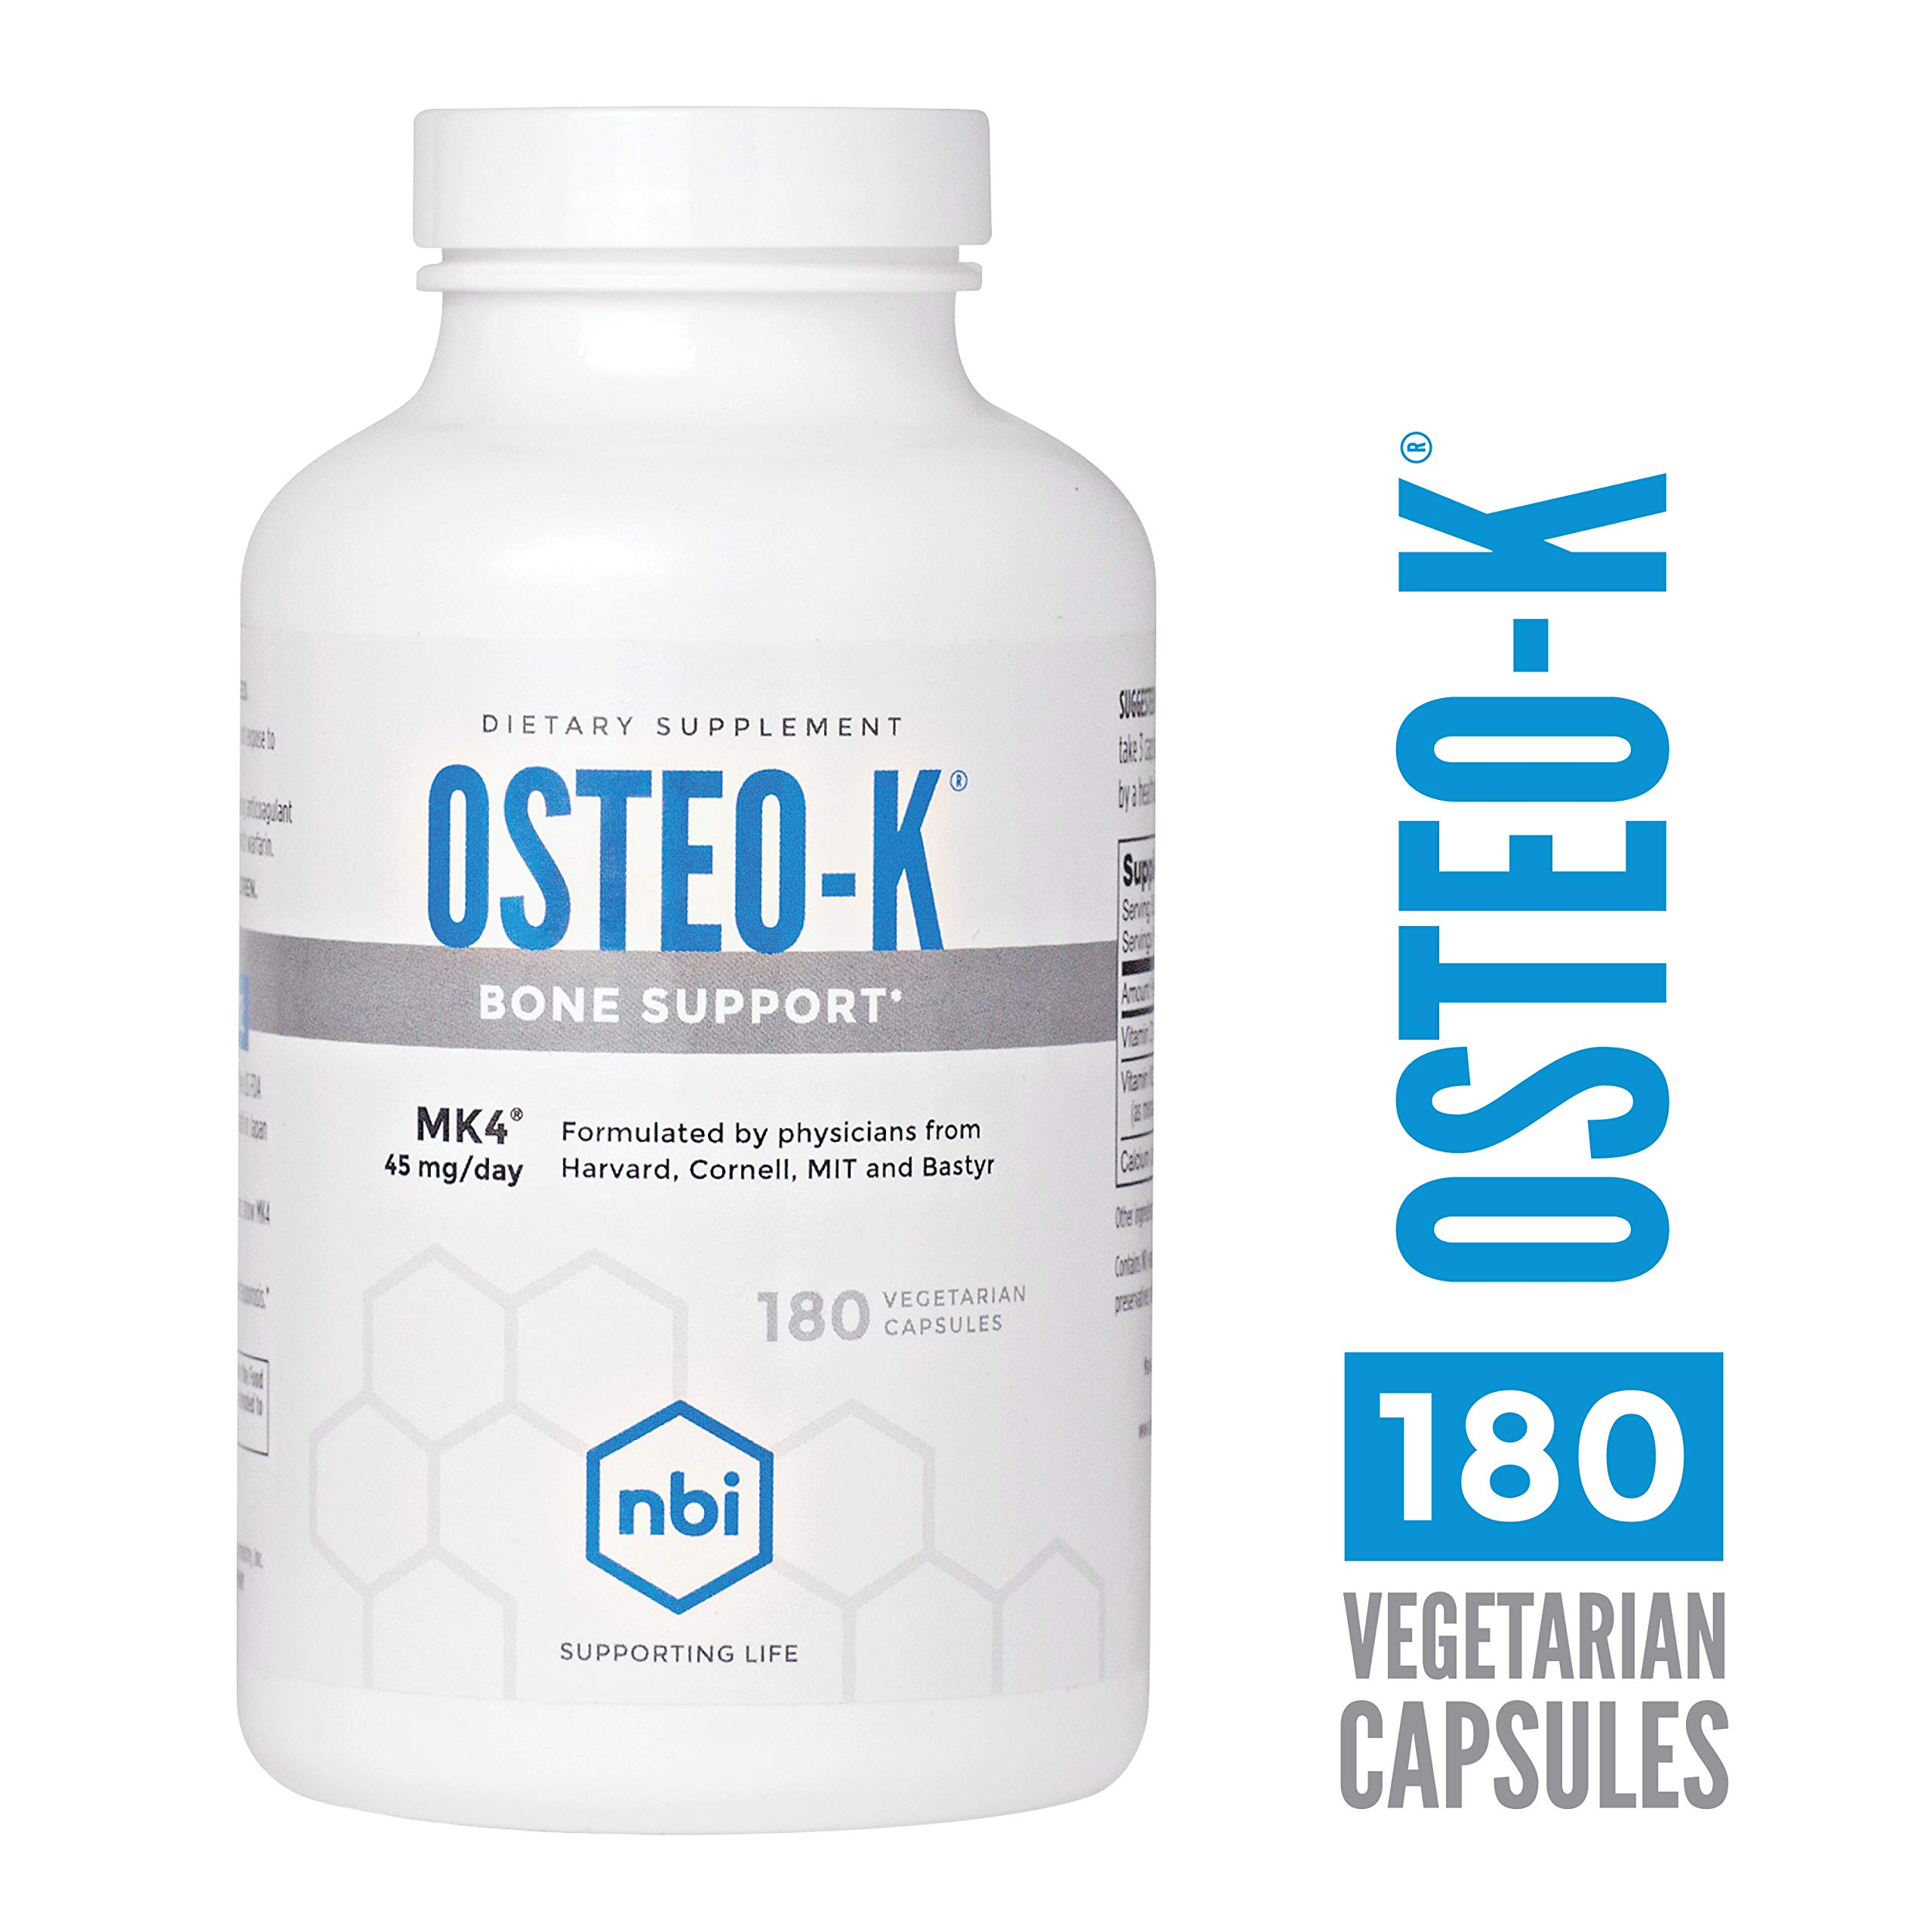 NBI Osteo-K Bone Support | Vitamin D & K Complex with Calcium Citrate Supplement | 45mg Vitamin K2 (MK4) for Strong Bone Health & Function | 180ct Veggie Capsules